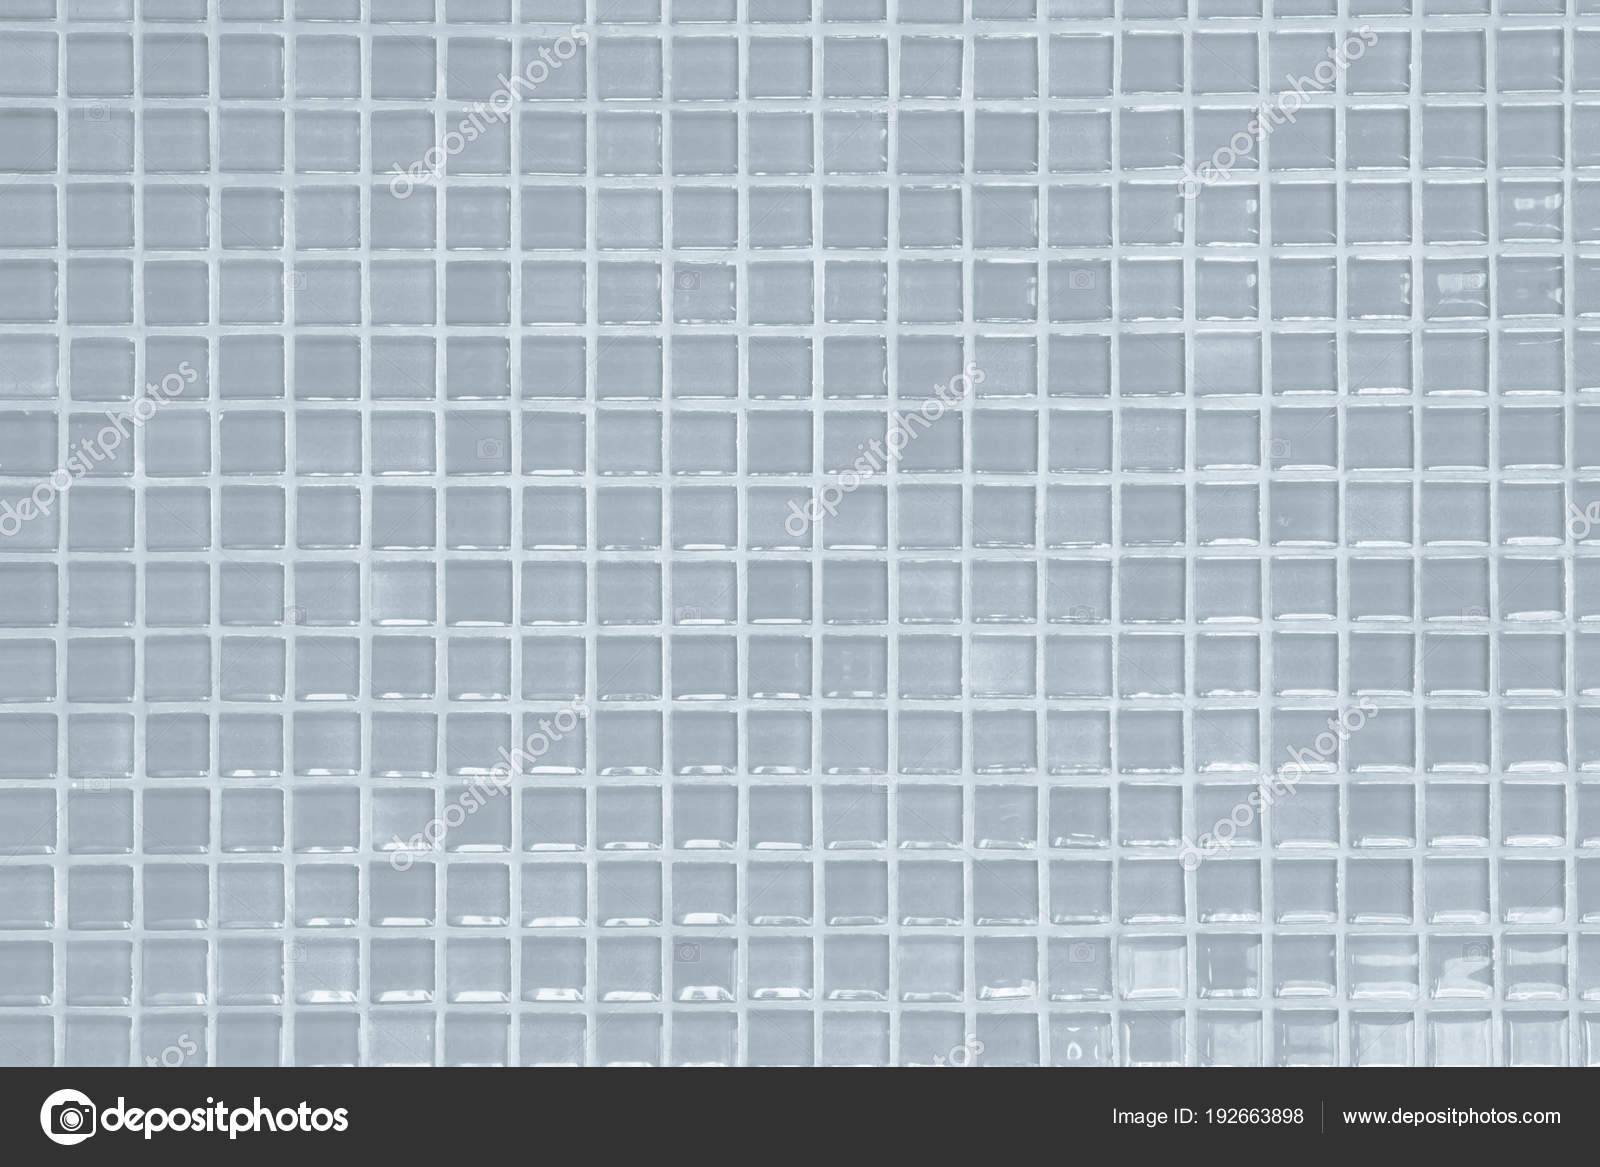 White and Grey the tile wall high resolution real photo or brick ...